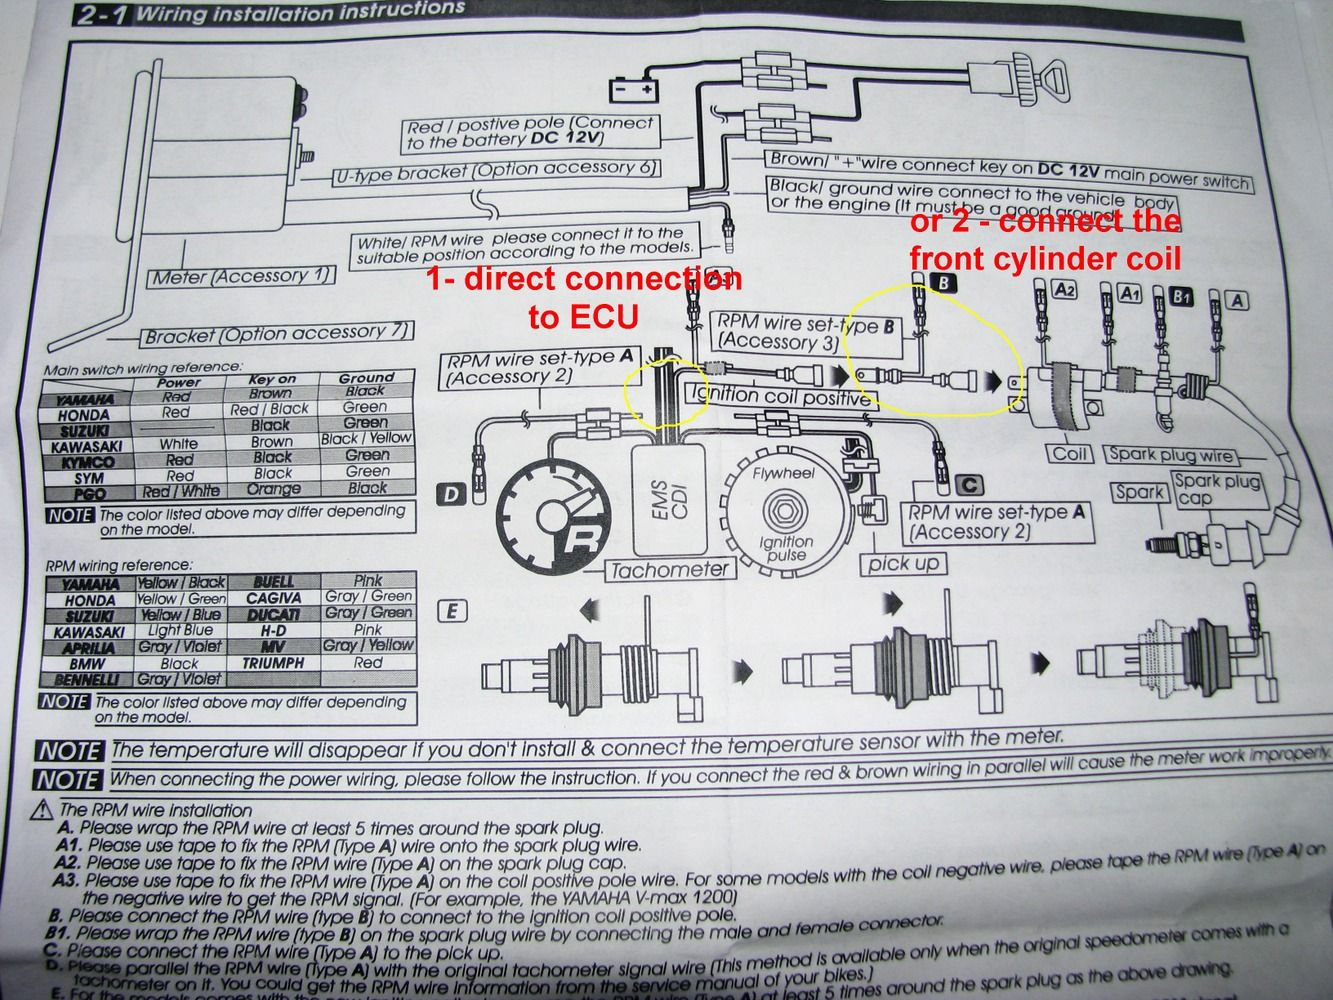 Pro Max Tach Wiring | Wiring Diagram Tachometer Schematic Diagrams Colors on am/fm radio schematic diagrams, ignition switch schematic diagrams, antenna schematic diagrams, voltage regulator schematic diagrams, using meters electronic circuit schematic diagrams, gm schematic diagrams, security system schematic diagrams, voltmeter schematic diagrams, air conditioning schematic diagrams,